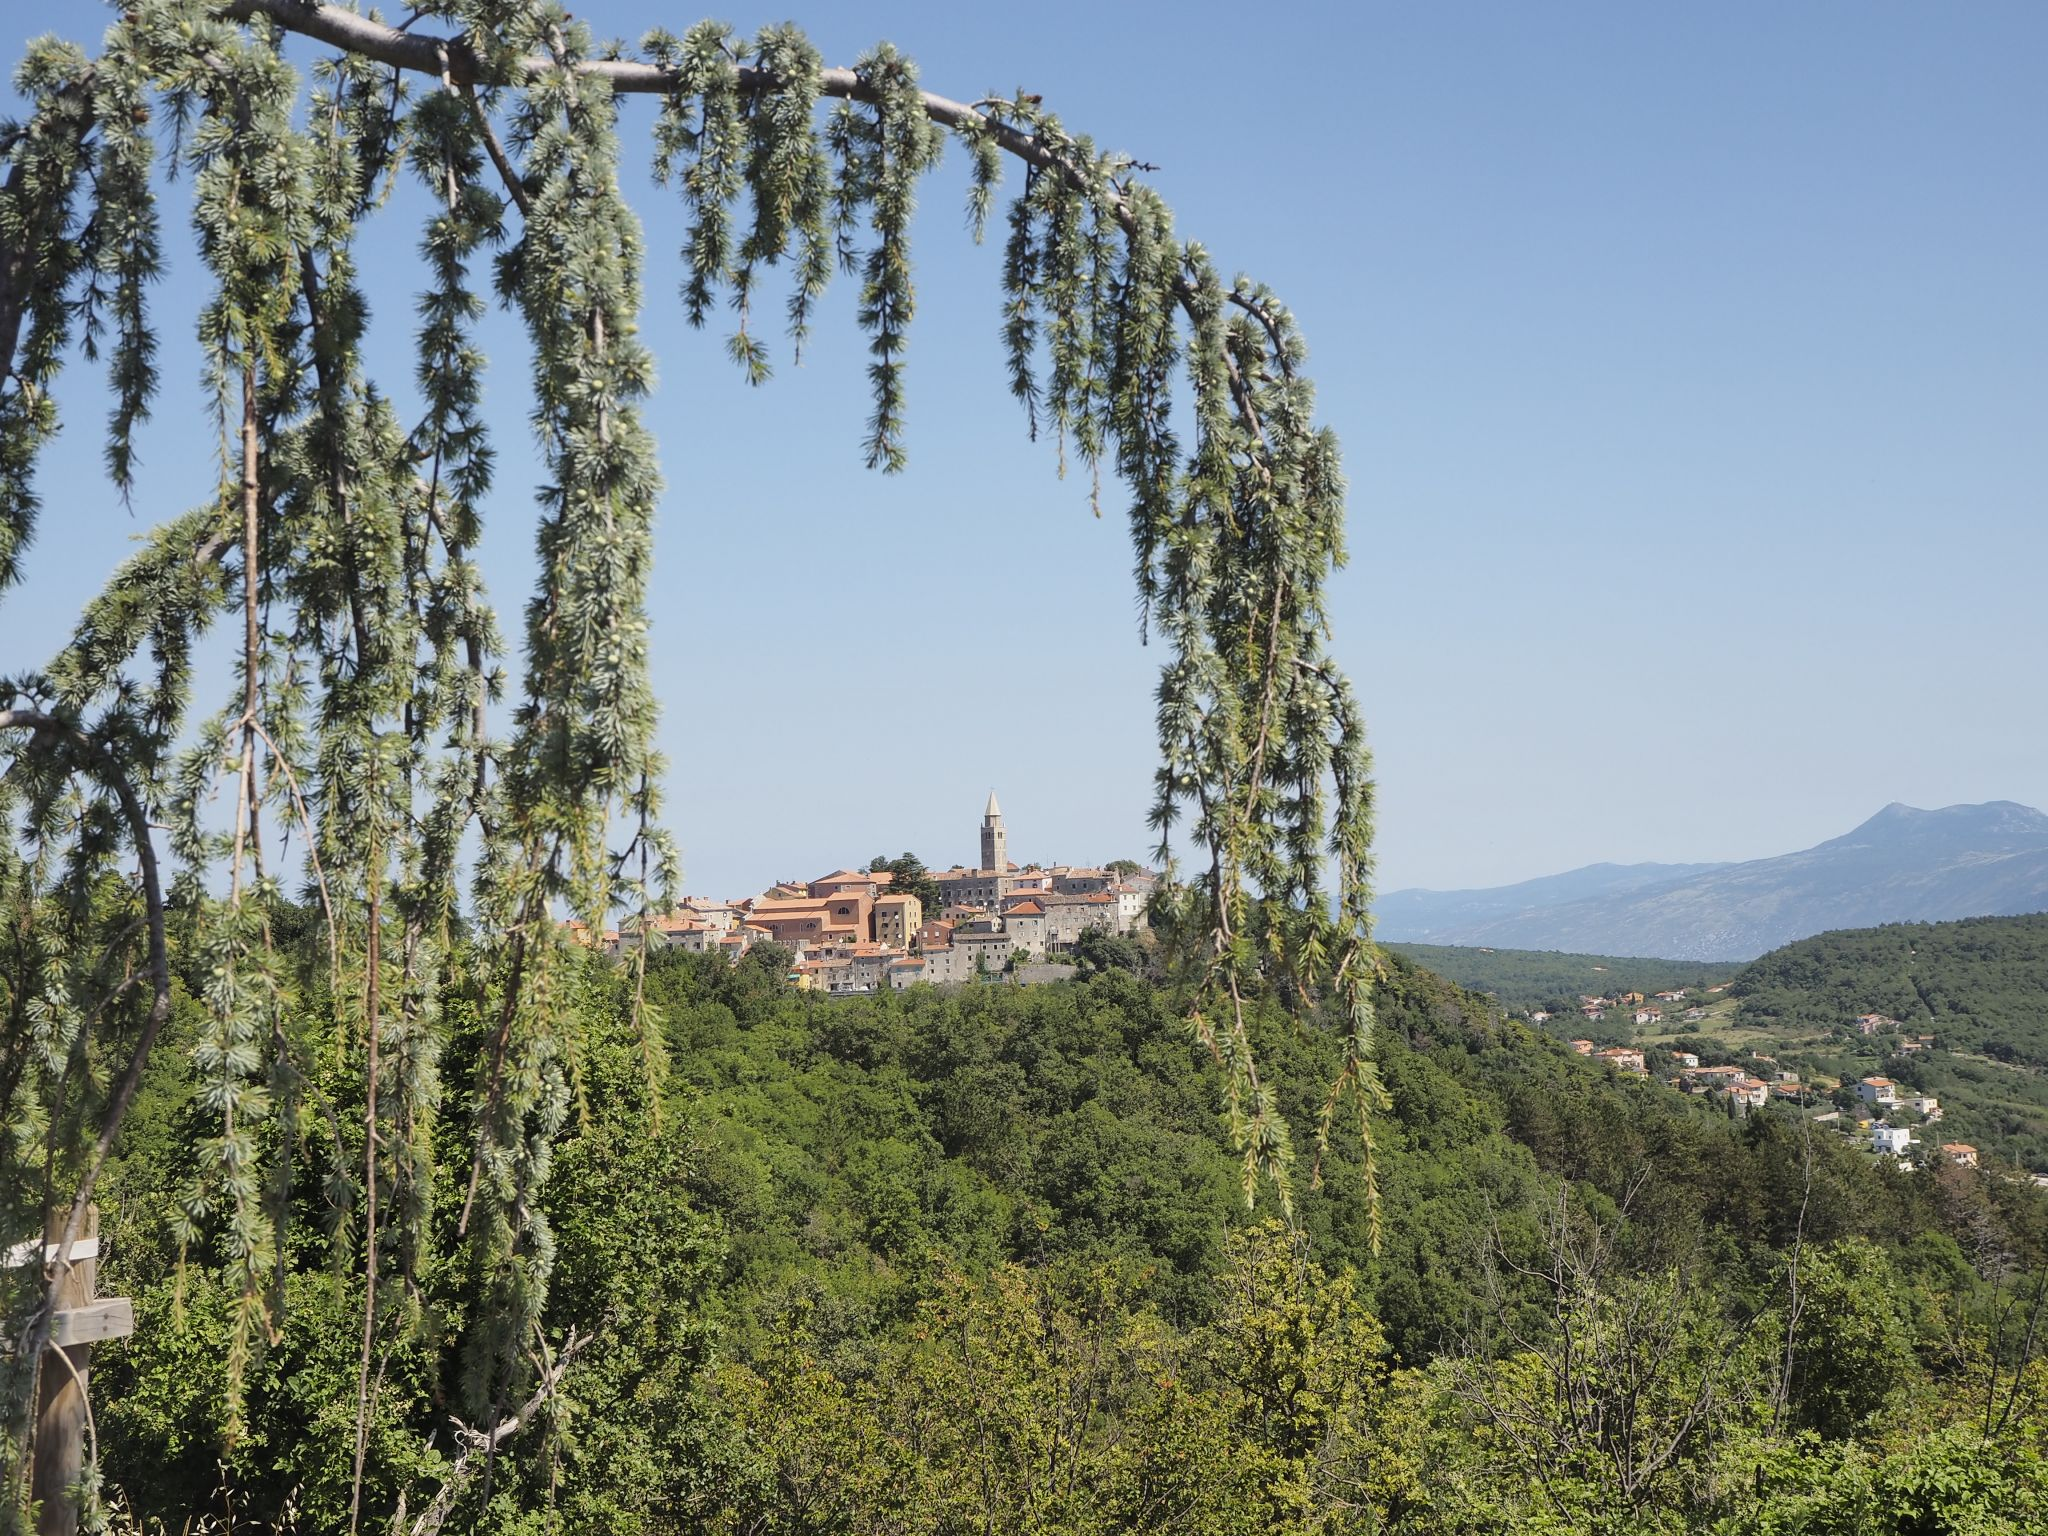 Old town of Labin from cemetry, Croatia